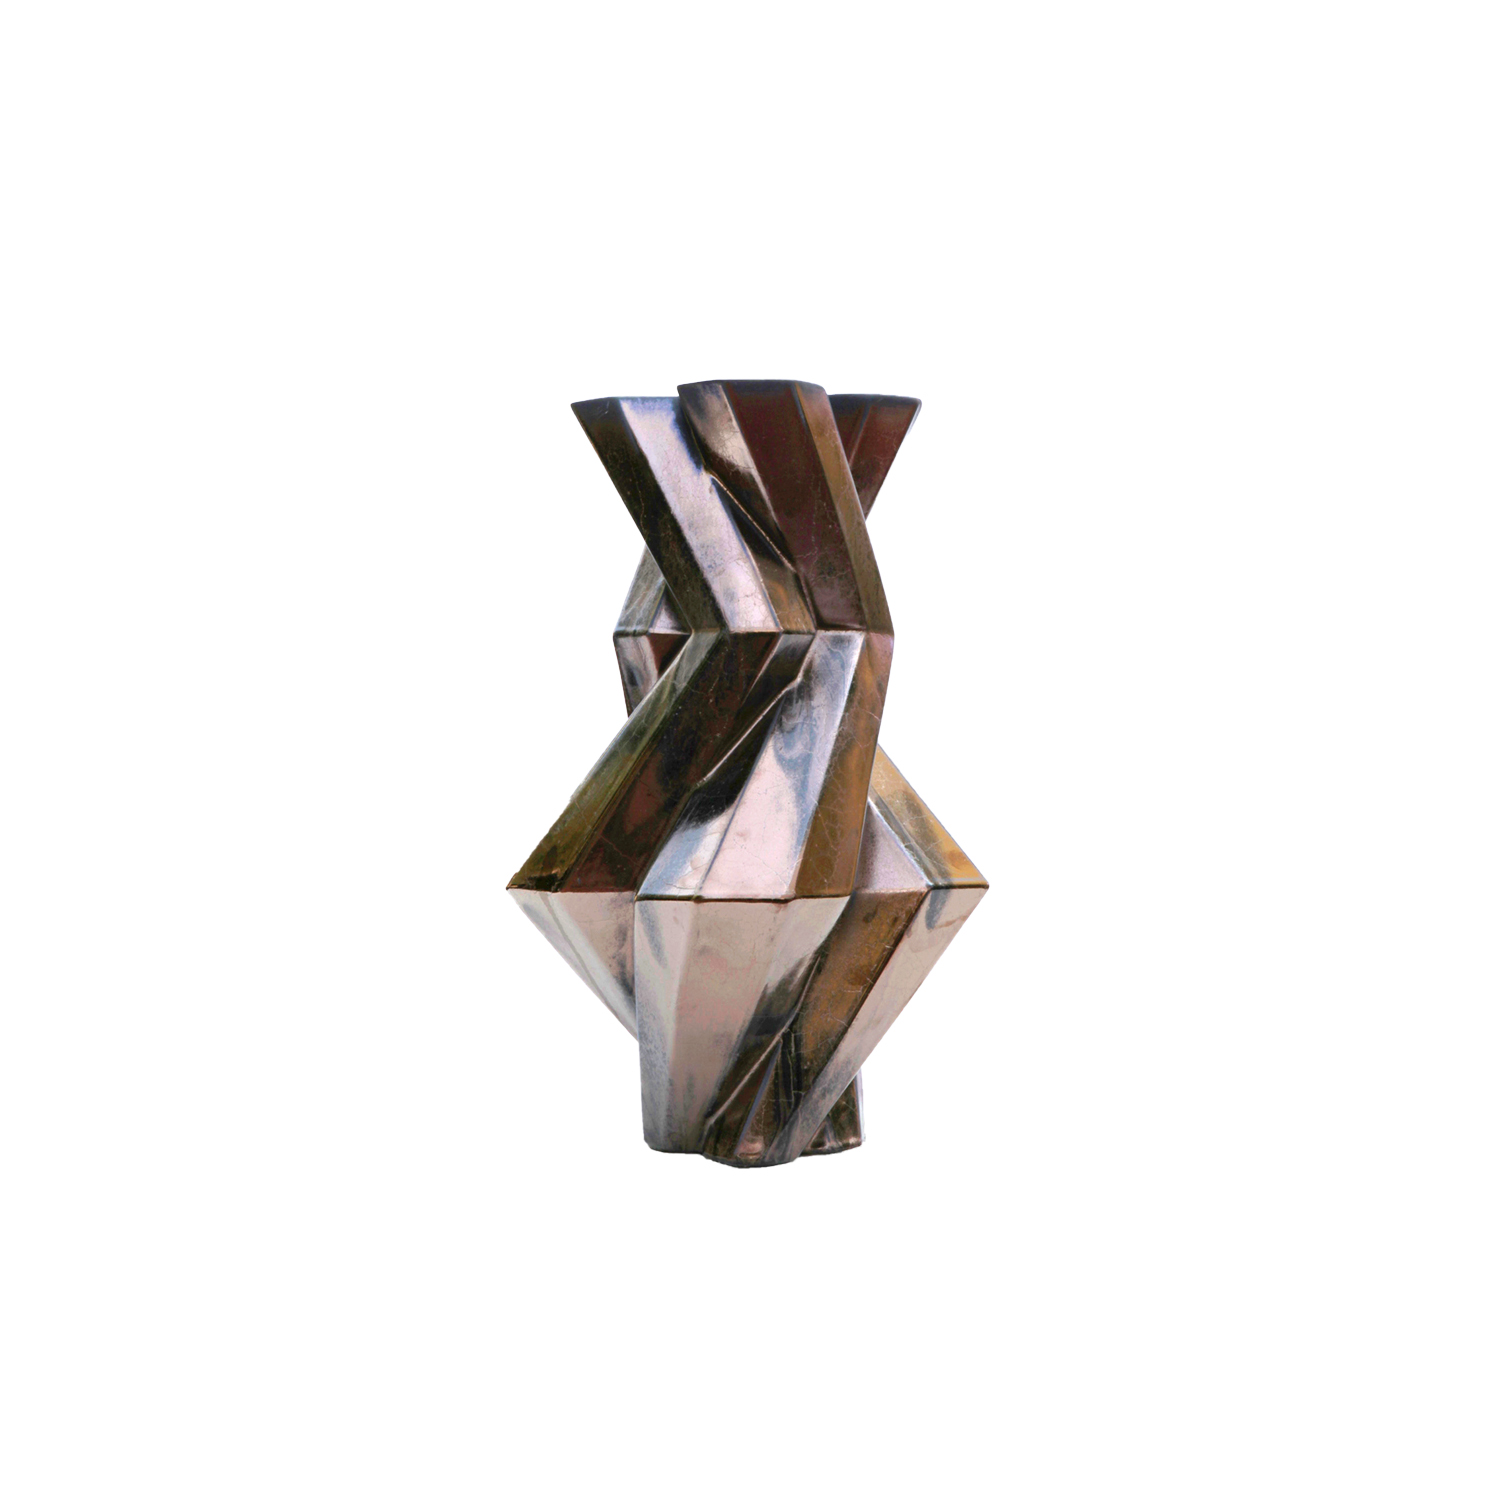 Fortress Castle Vase Bronze - Designer Lara Bohinc explores the marriage of ancient and futuristic form in the new Fortress Vase range, which has created a more complex geometric and modern structure from the original inspiration of the octagonal towers at the Diocletian Palace in Croatia. The resulting hexagonal blocks interlock and embrace to allow the play of light and shade on the many surfaces and angles. There are four Fortress shapes: the larger Column and Castle (45cm height), the Pillar (30cm height) and the Tower vase (37cm height). These are hand made from ceramic in a small Italian artisanal workshop and come in three finishes: dark gold, bronze and speckled white.  | Matter of Stuff